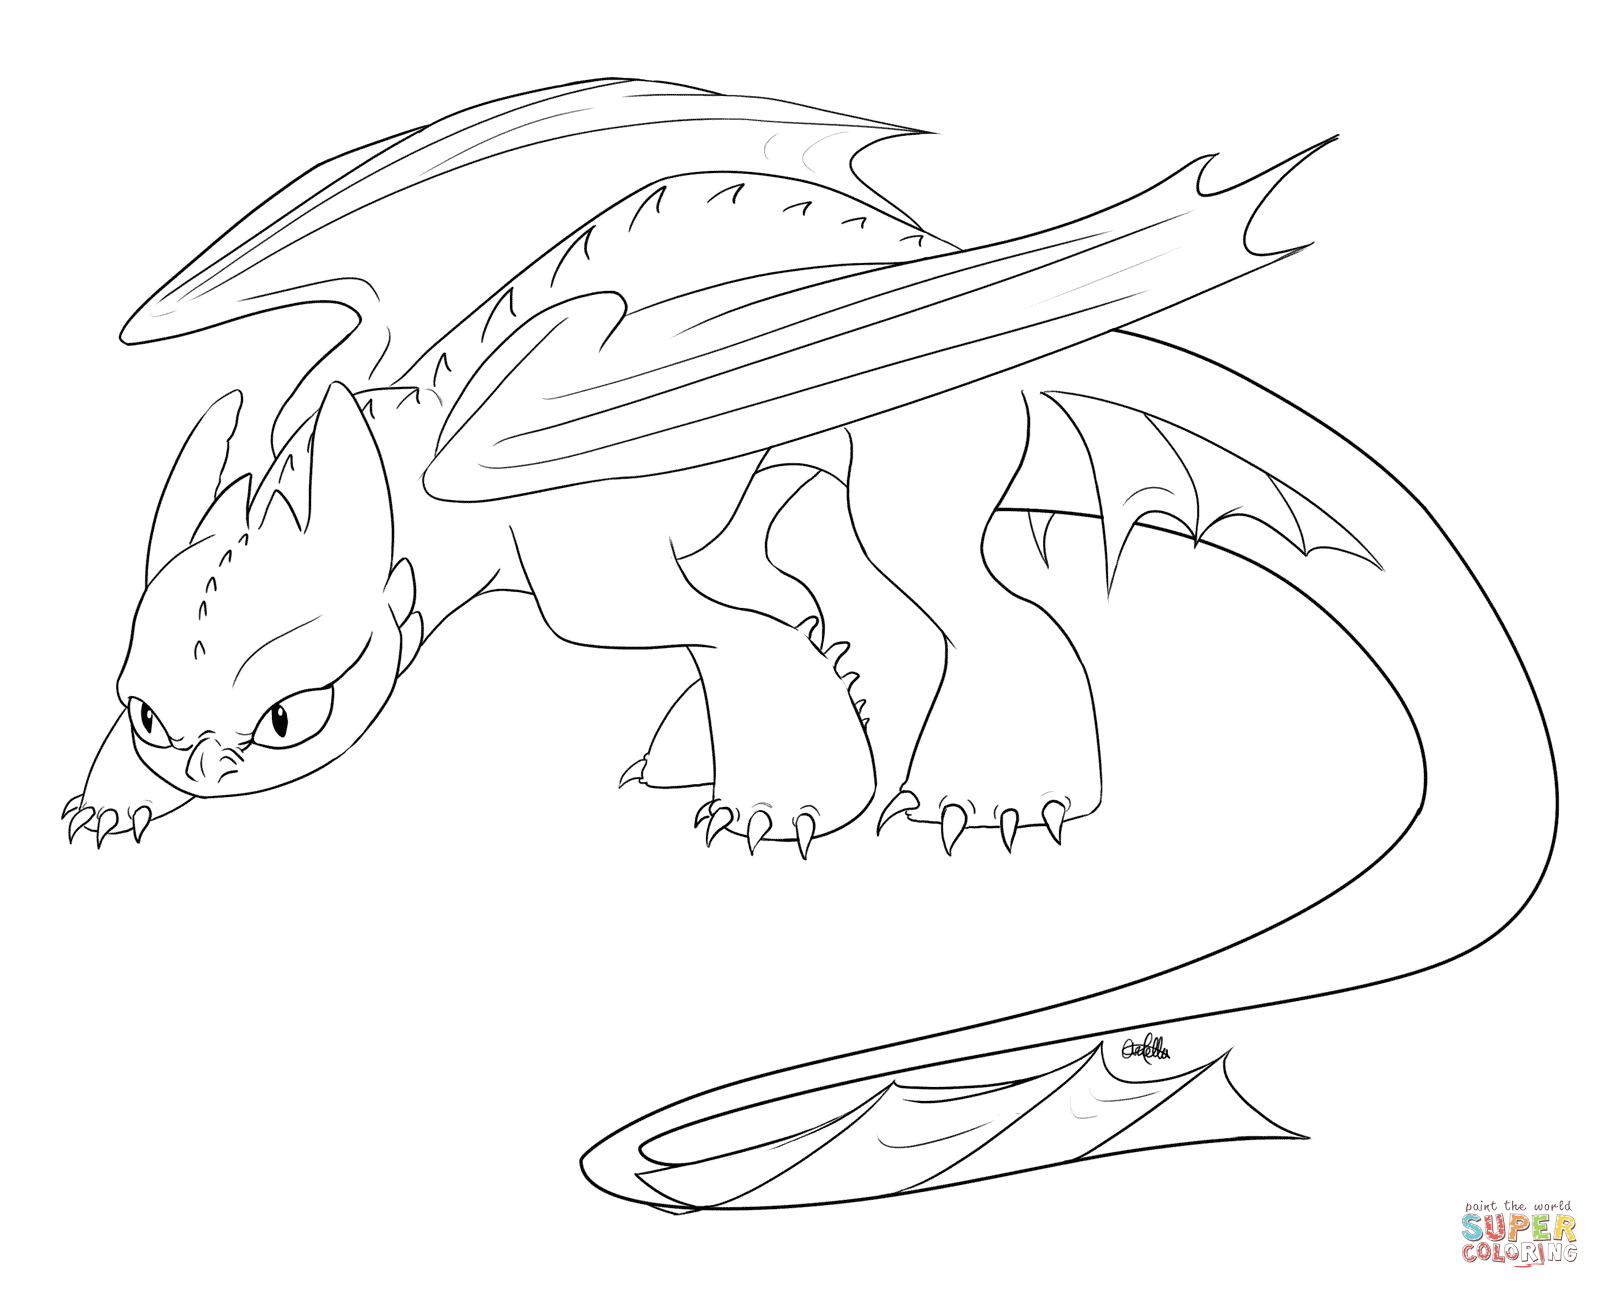 toothless dragon coloring pages toothless dragon drawing at getdrawings free download dragon toothless pages coloring